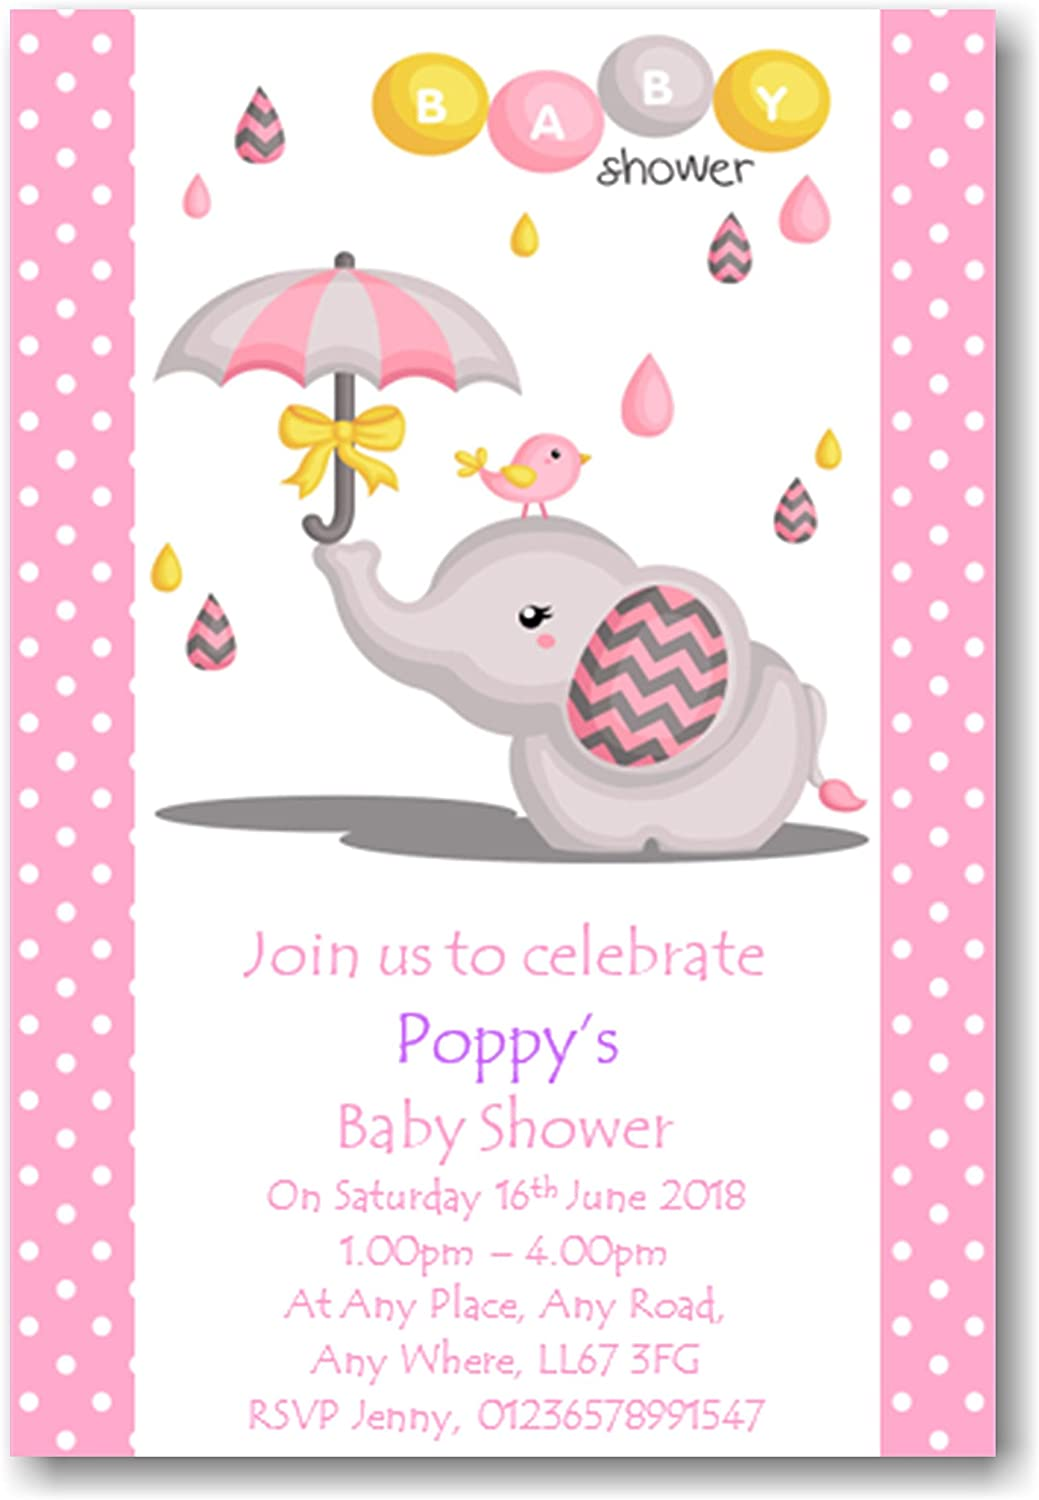 Personalised Beautiful Girls Baby Shower Invitations Invites REF BS22 Surprise can be added 10